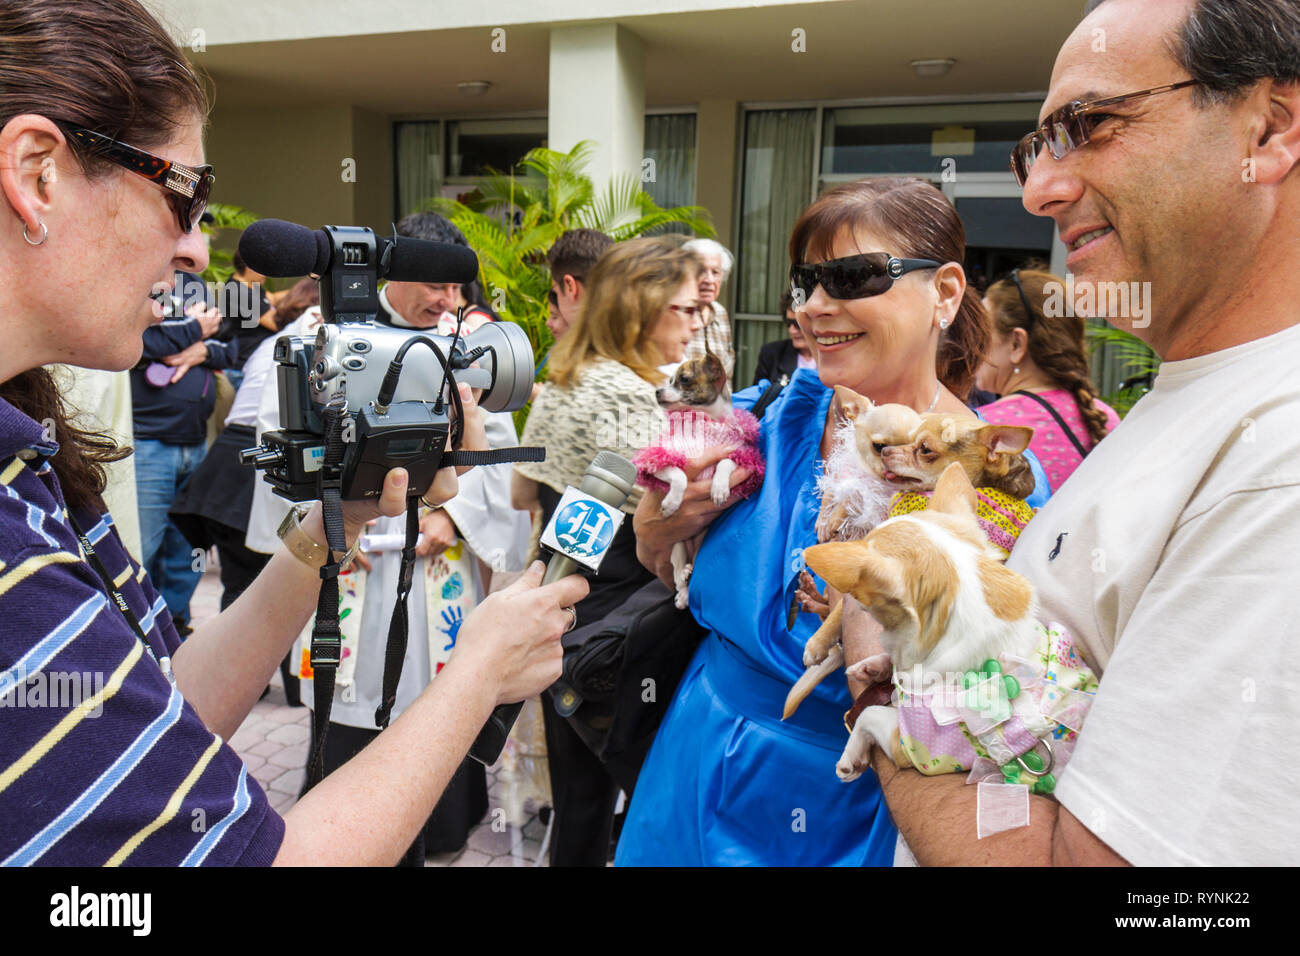 Miami Florida Temple Israel Bow-Wow Palooza Interfaith Blessing of the Animals community event owner pet dog animal Chihuahua wo - Stock Image